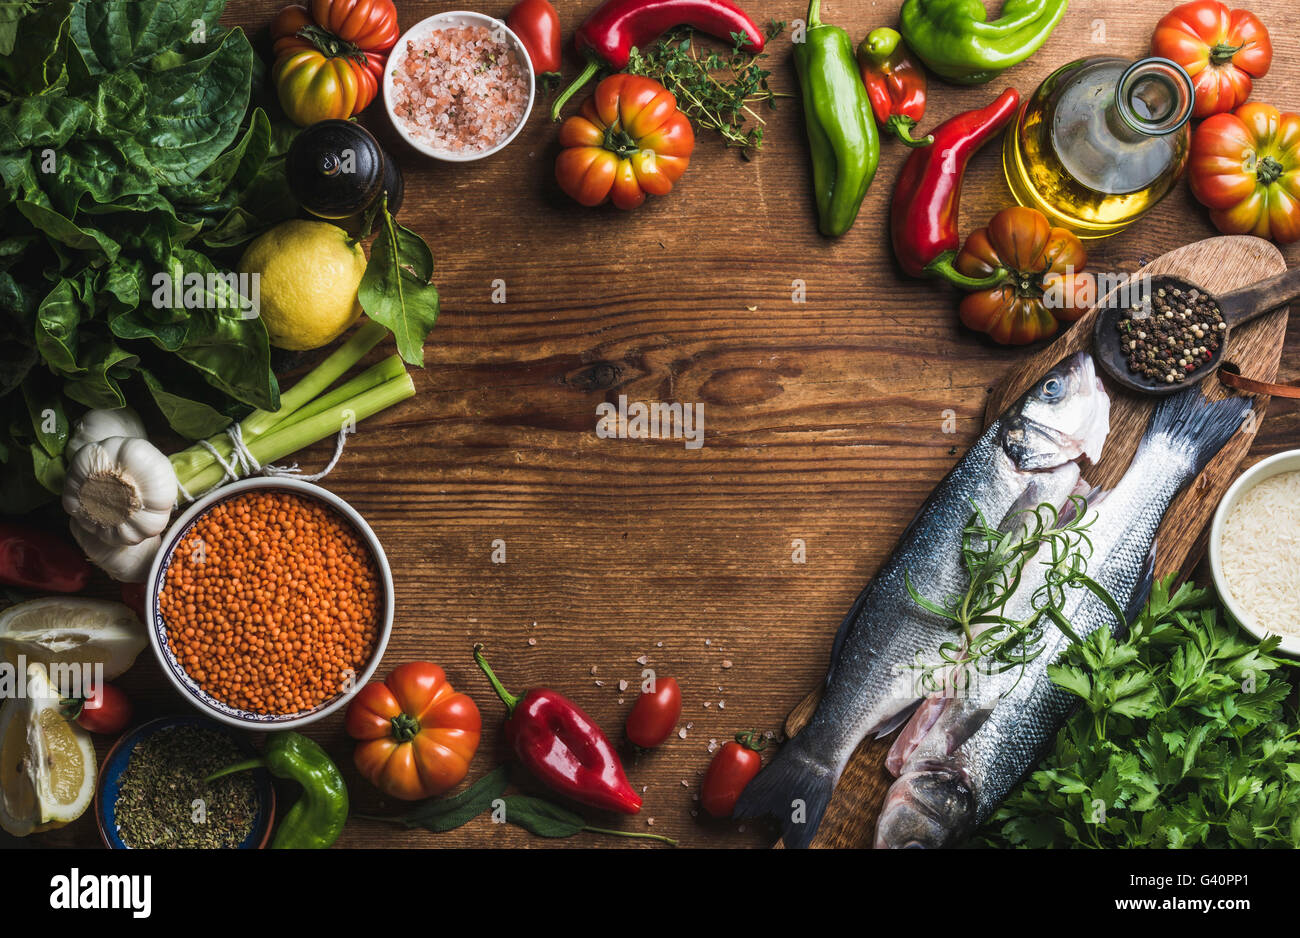 Ingredients photos ingredients images alamy Cuisiner le bar